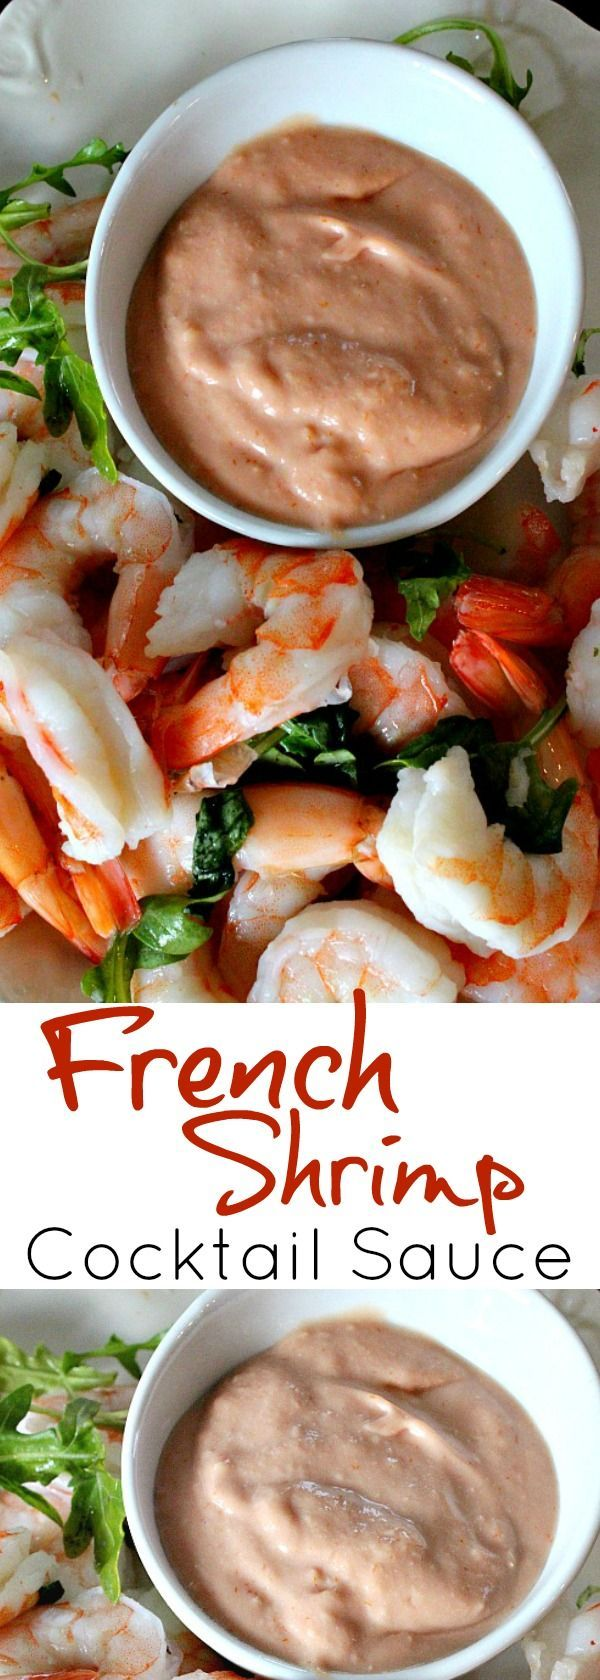 Broadmoor Hotel Reccipe for A French Version of a Classic. This French Cocktail Sauce Recipe tames your favorite Cocktail Sauce into a creamy treat for Shrimp Cocktail. #french #cocktail #sauce #broadmoor #hotel via @lannisam